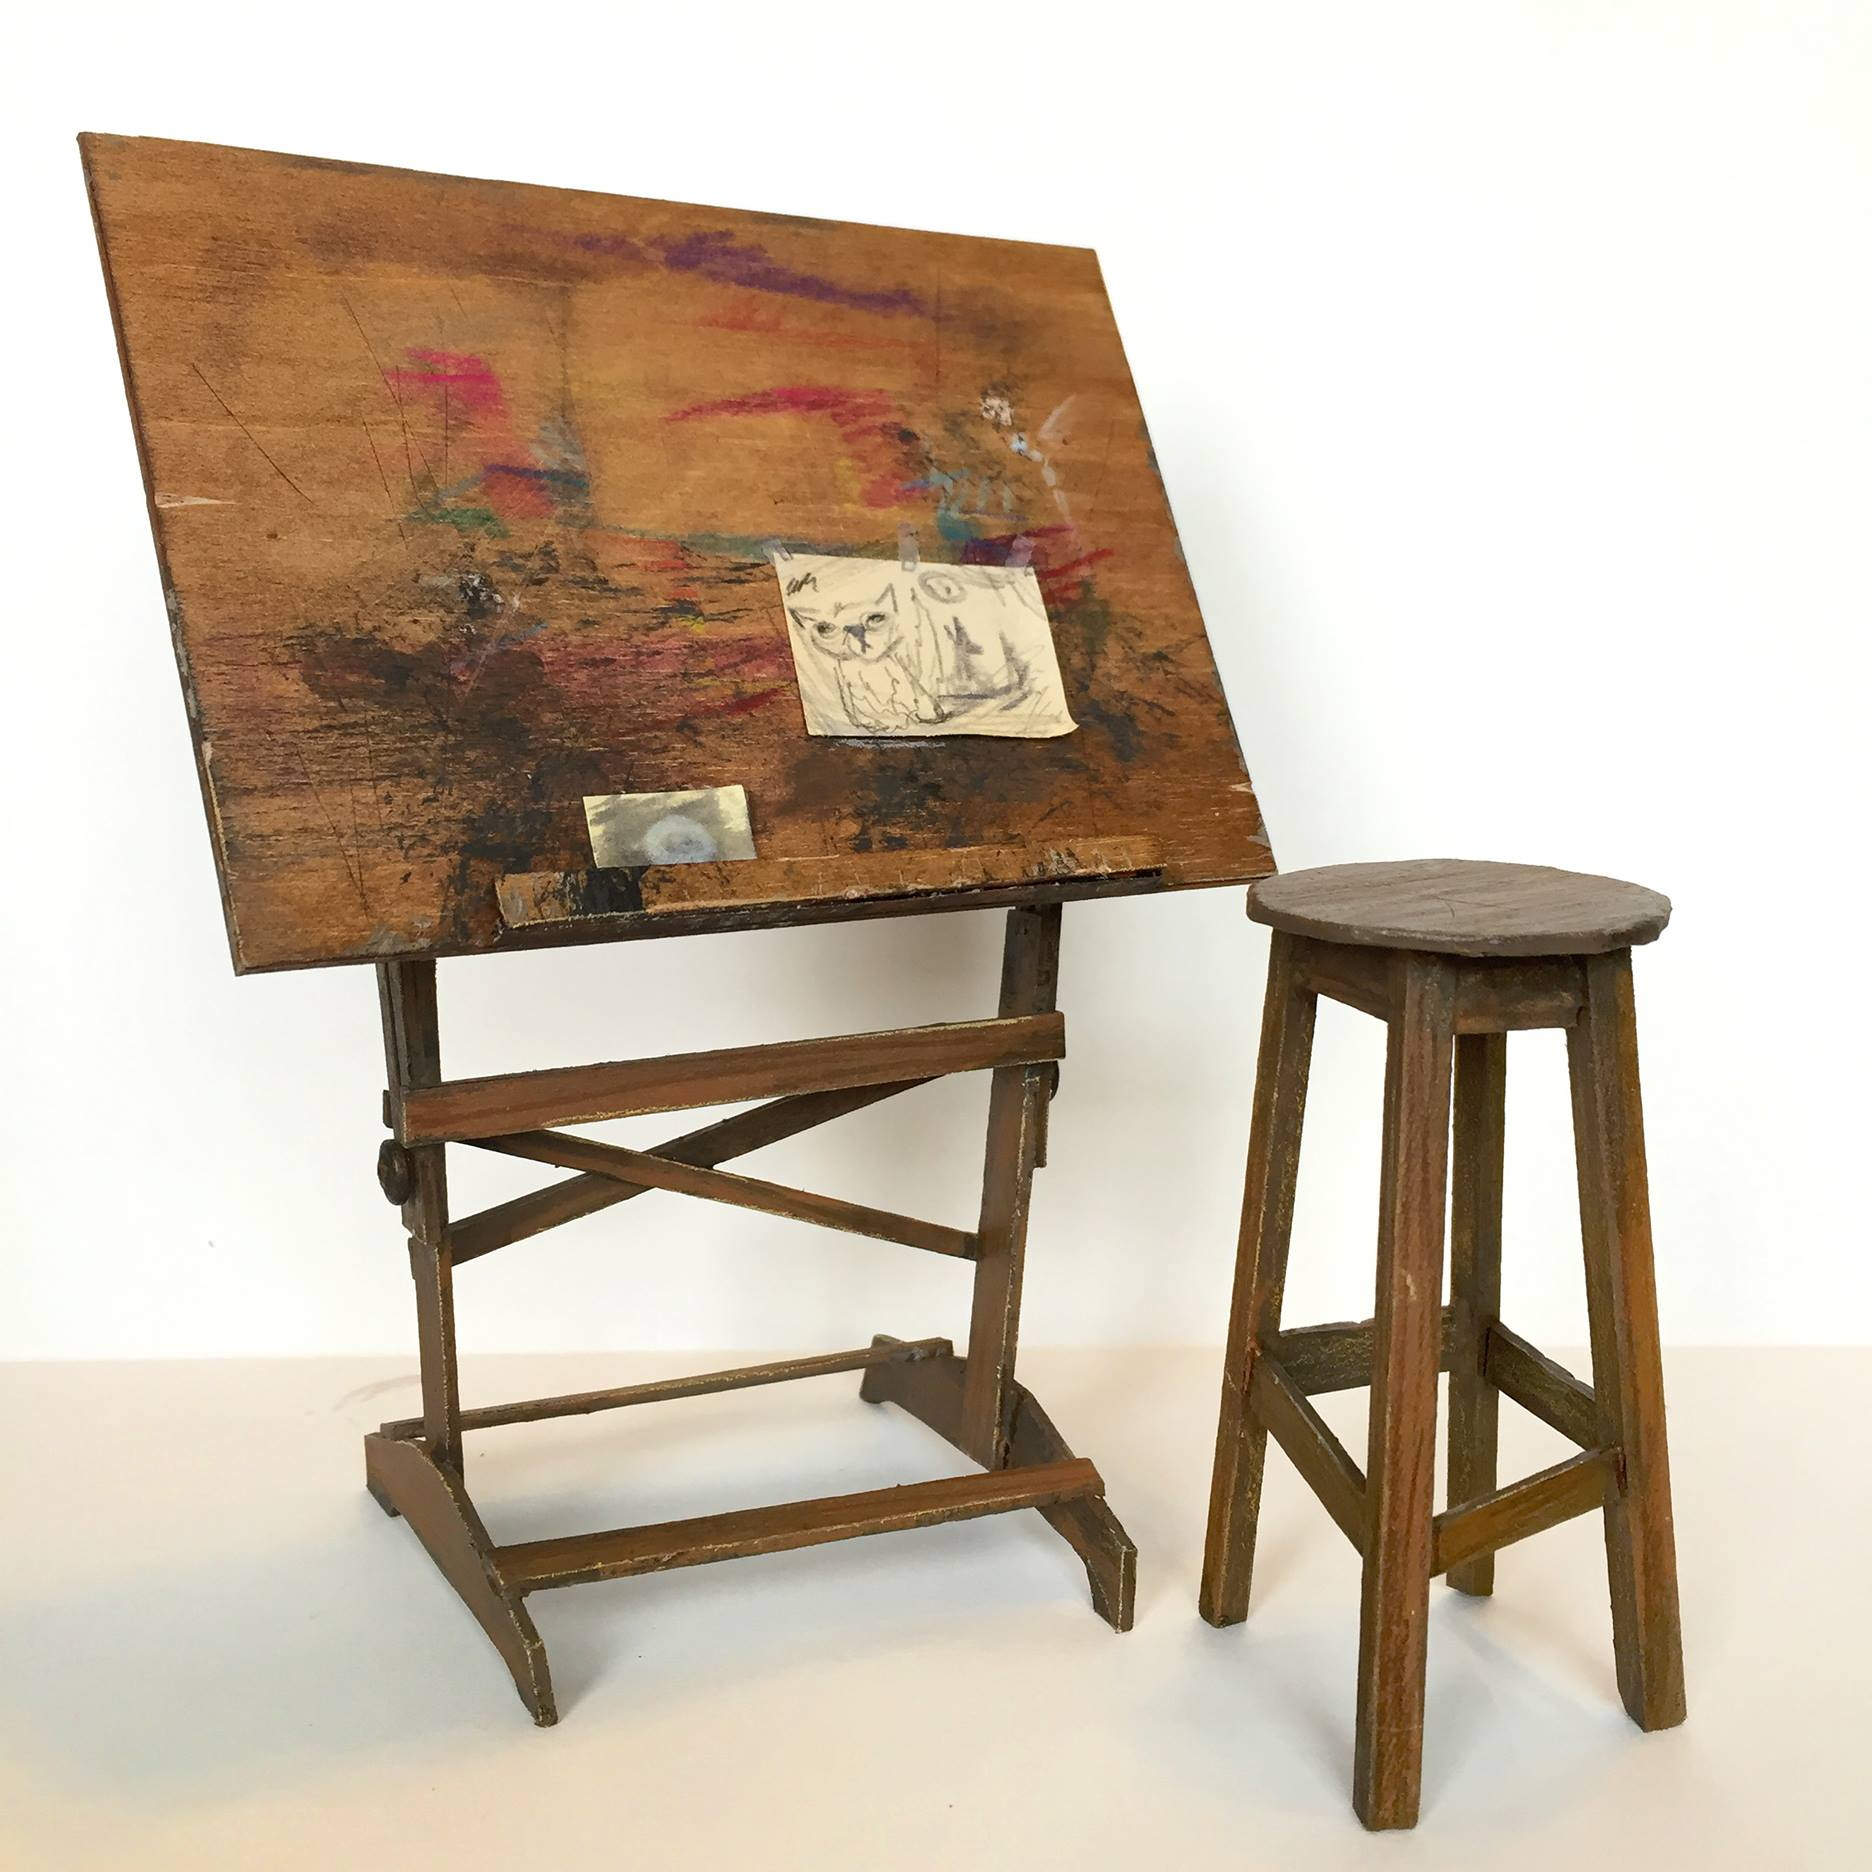 Drafting Table for <i>The Wolves in the Walls</i>